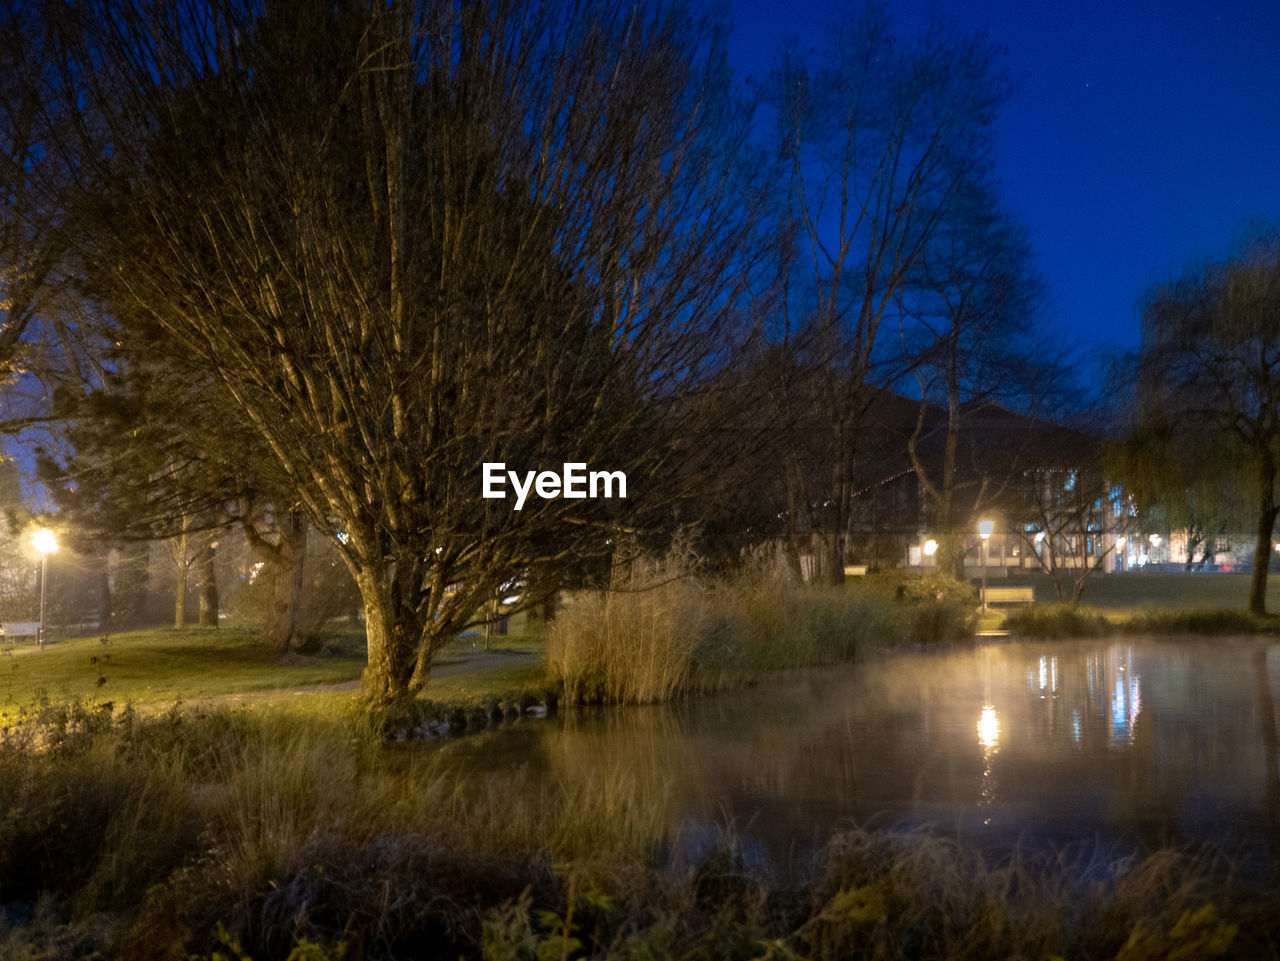 tree, plant, water, illuminated, night, nature, reflection, lake, sky, no people, bare tree, grass, scenics - nature, tranquility, architecture, outdoors, tranquil scene, beauty in nature, building exterior